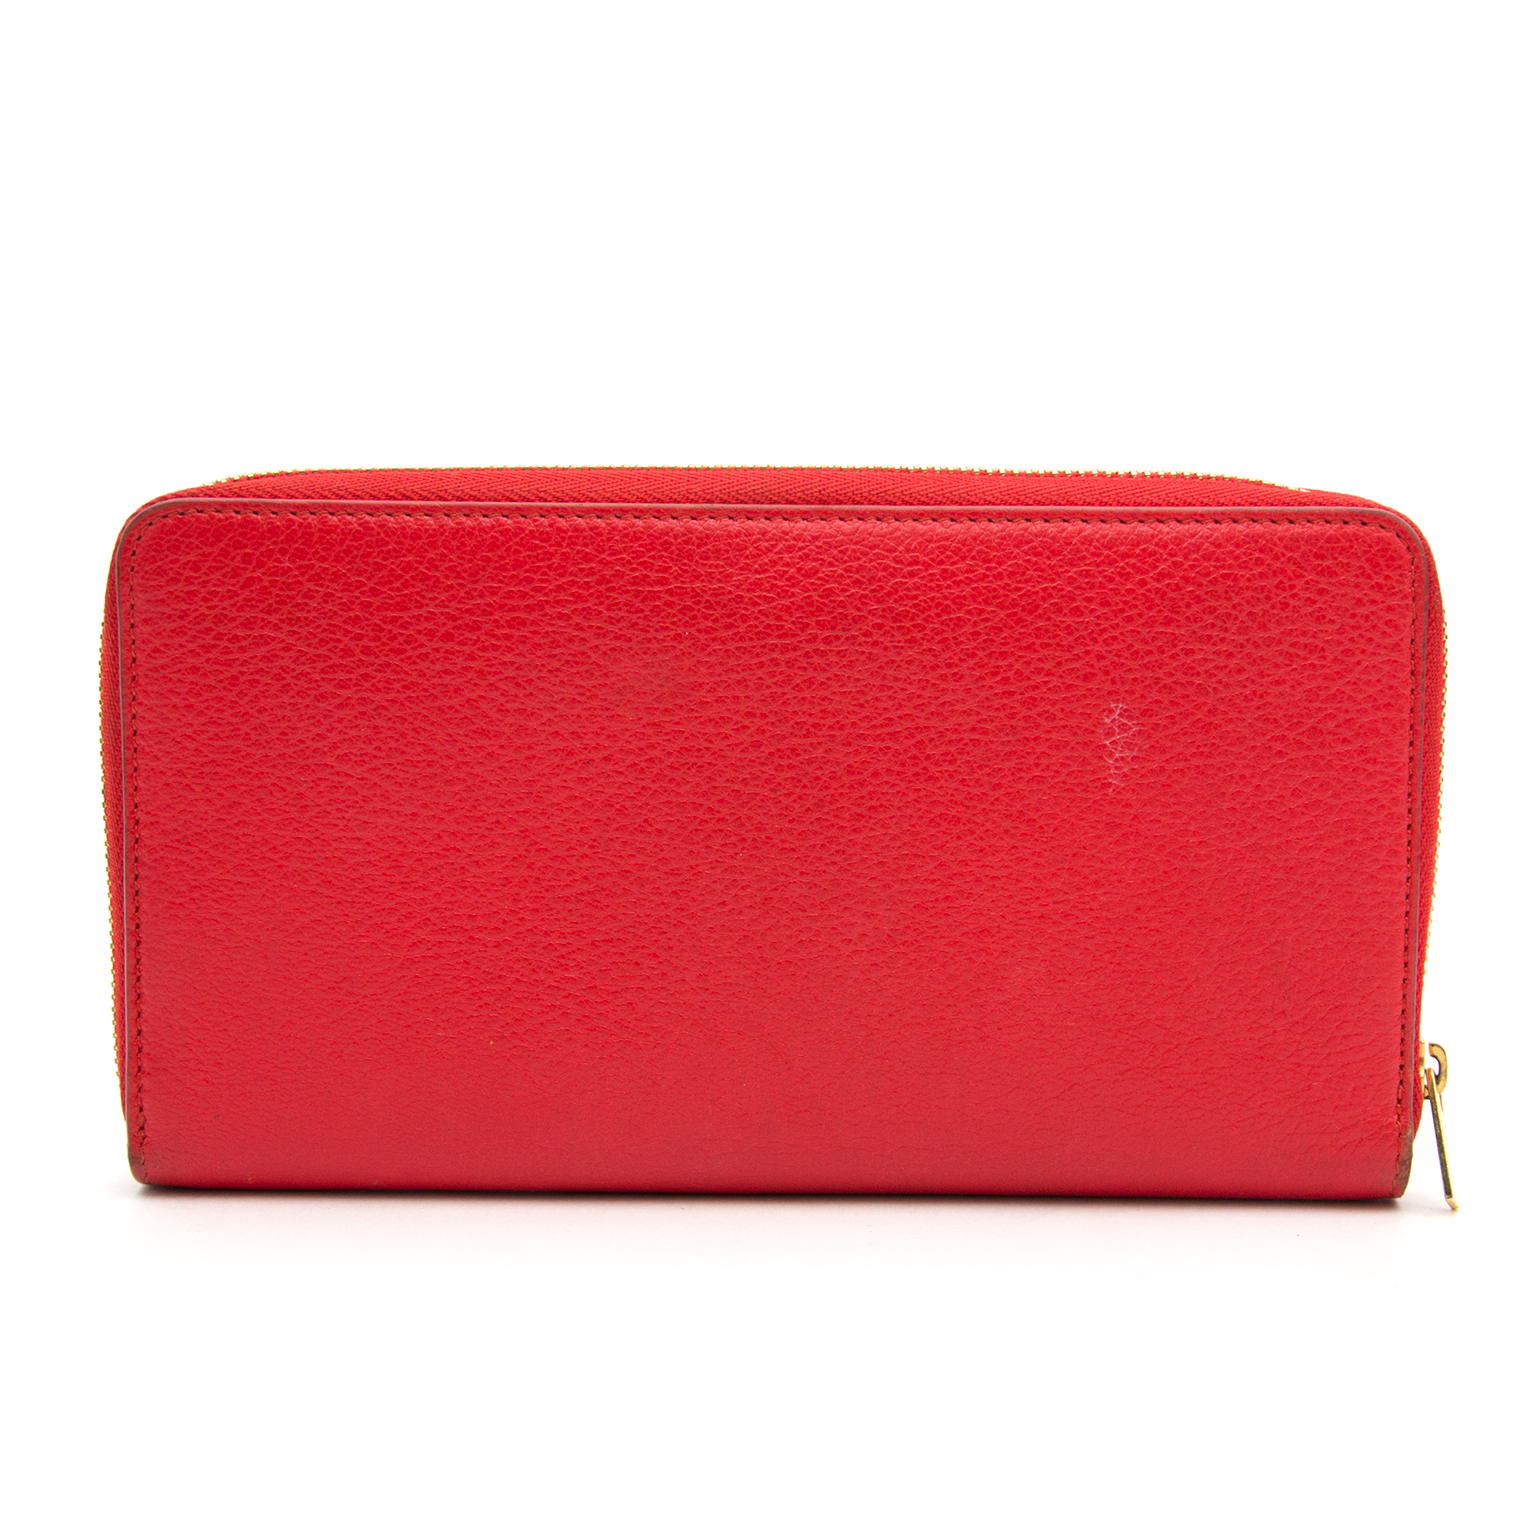 Buy Céline Red Zipped Multifunction Wallet at the right price at Labellov.com